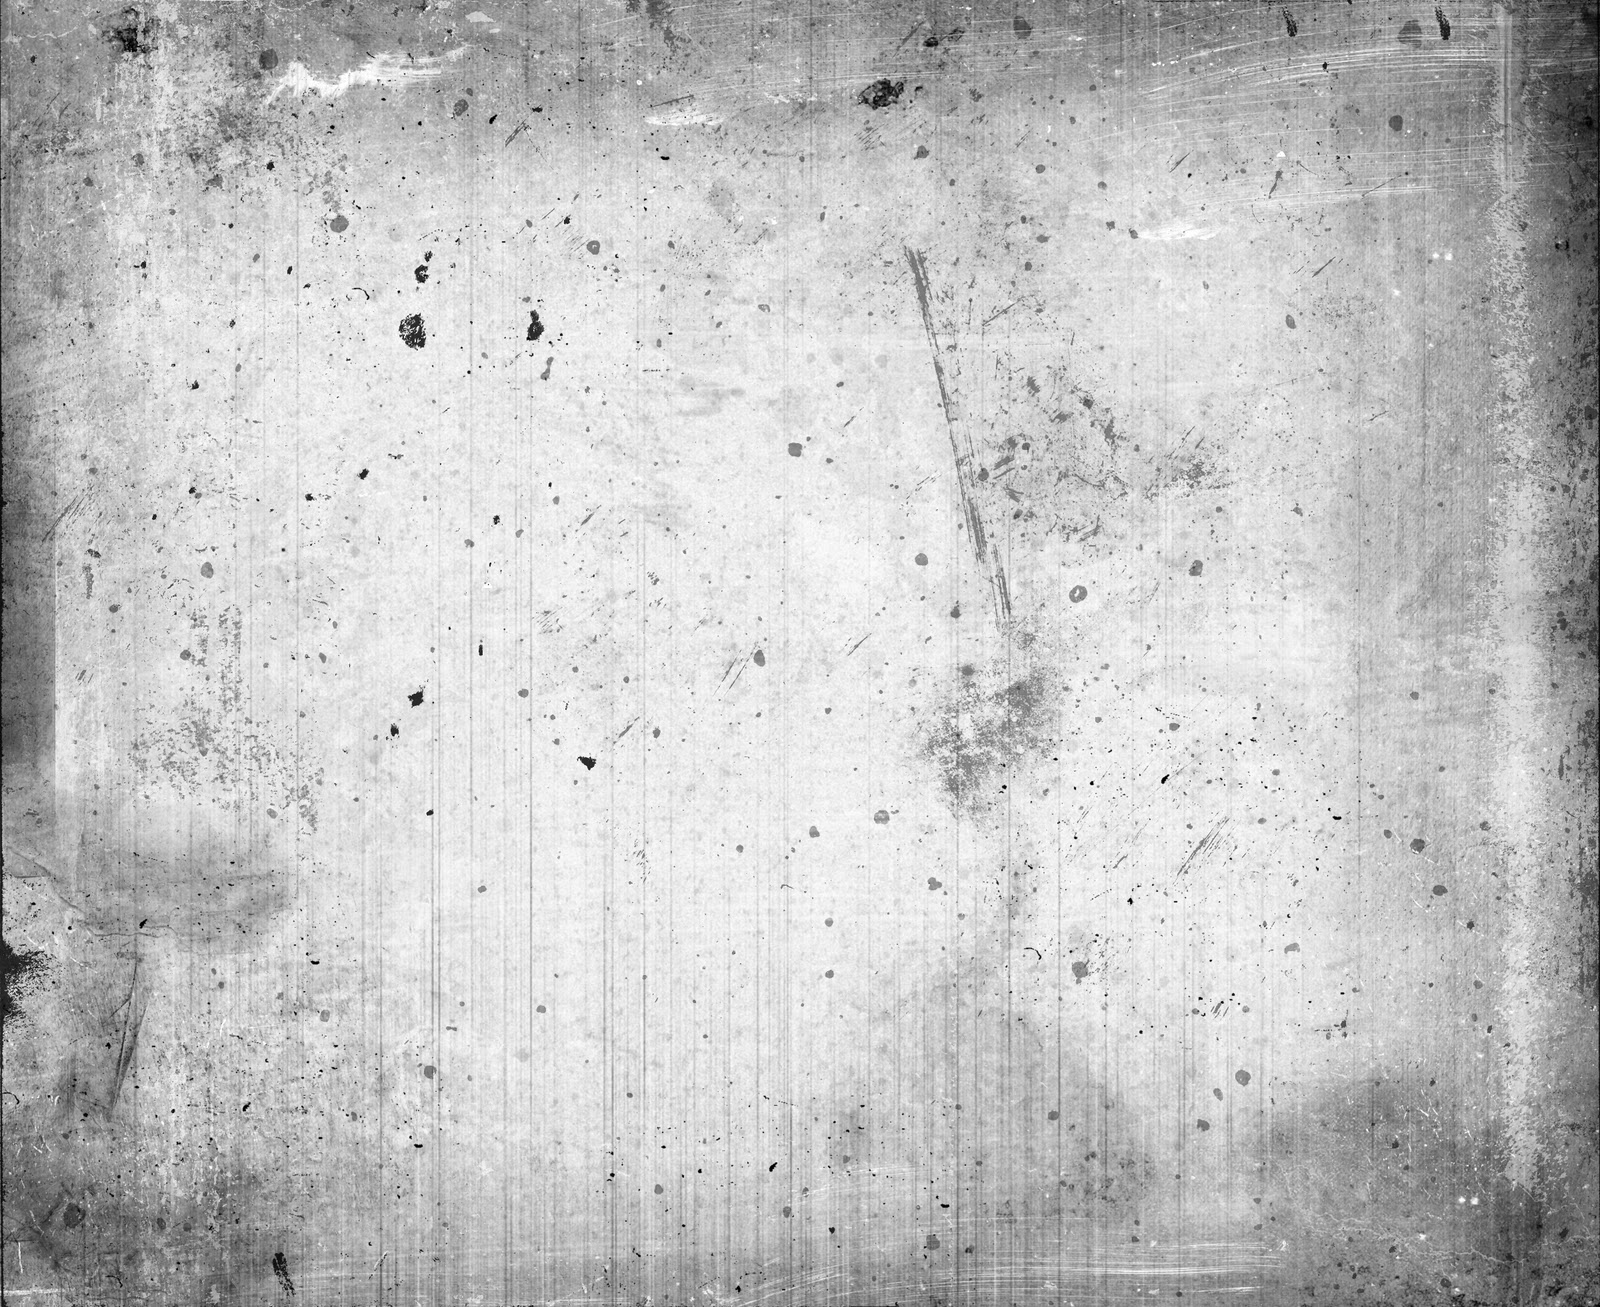 Grunge Texture Backgrounds For PowerPoint   Abstract and Textures 1600x1307